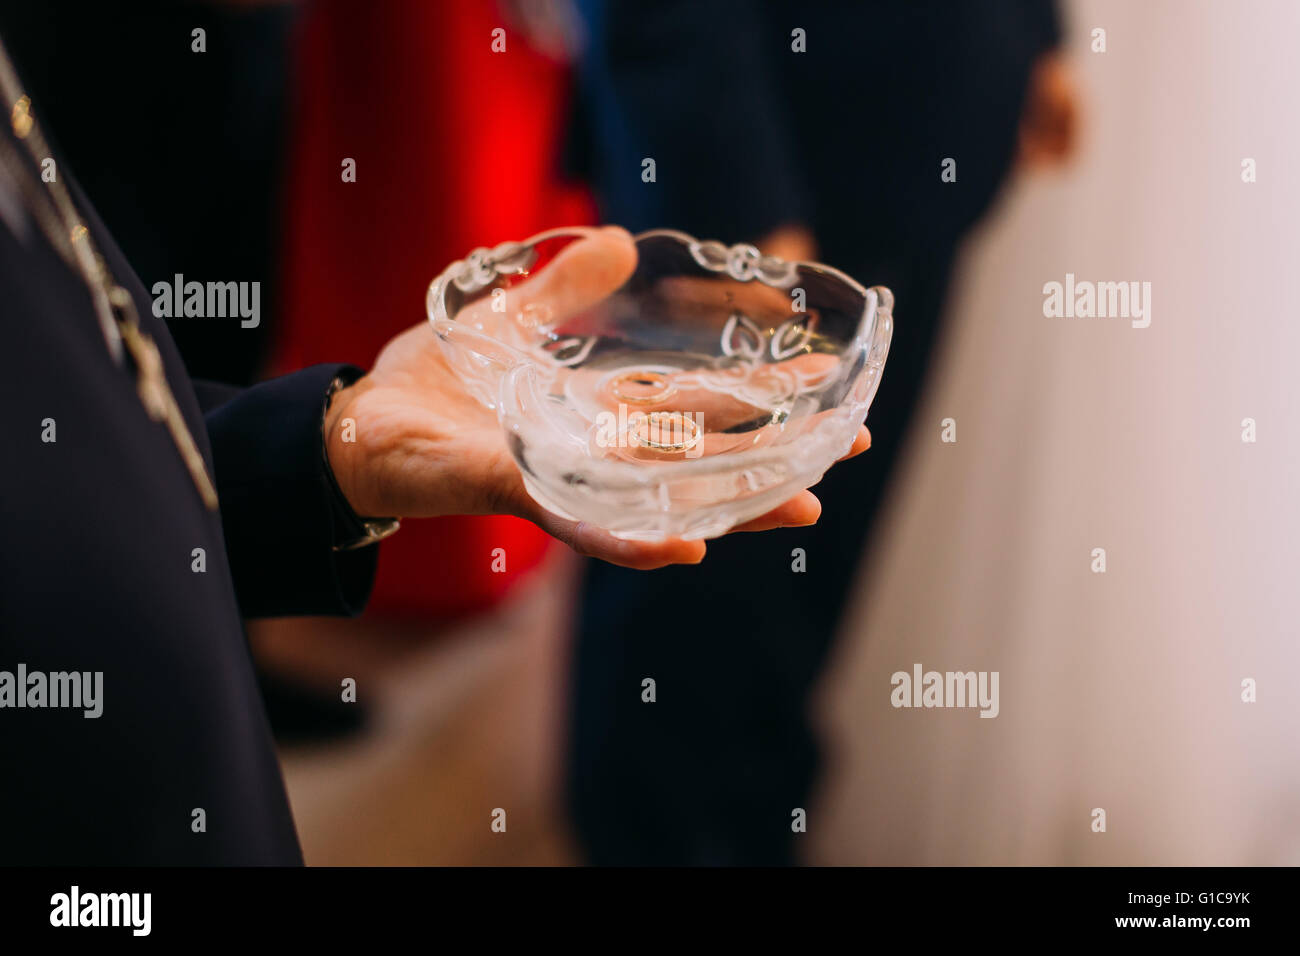 Man's hand holding heart-shaped crystal bowl with two wedding rings - Stock Image